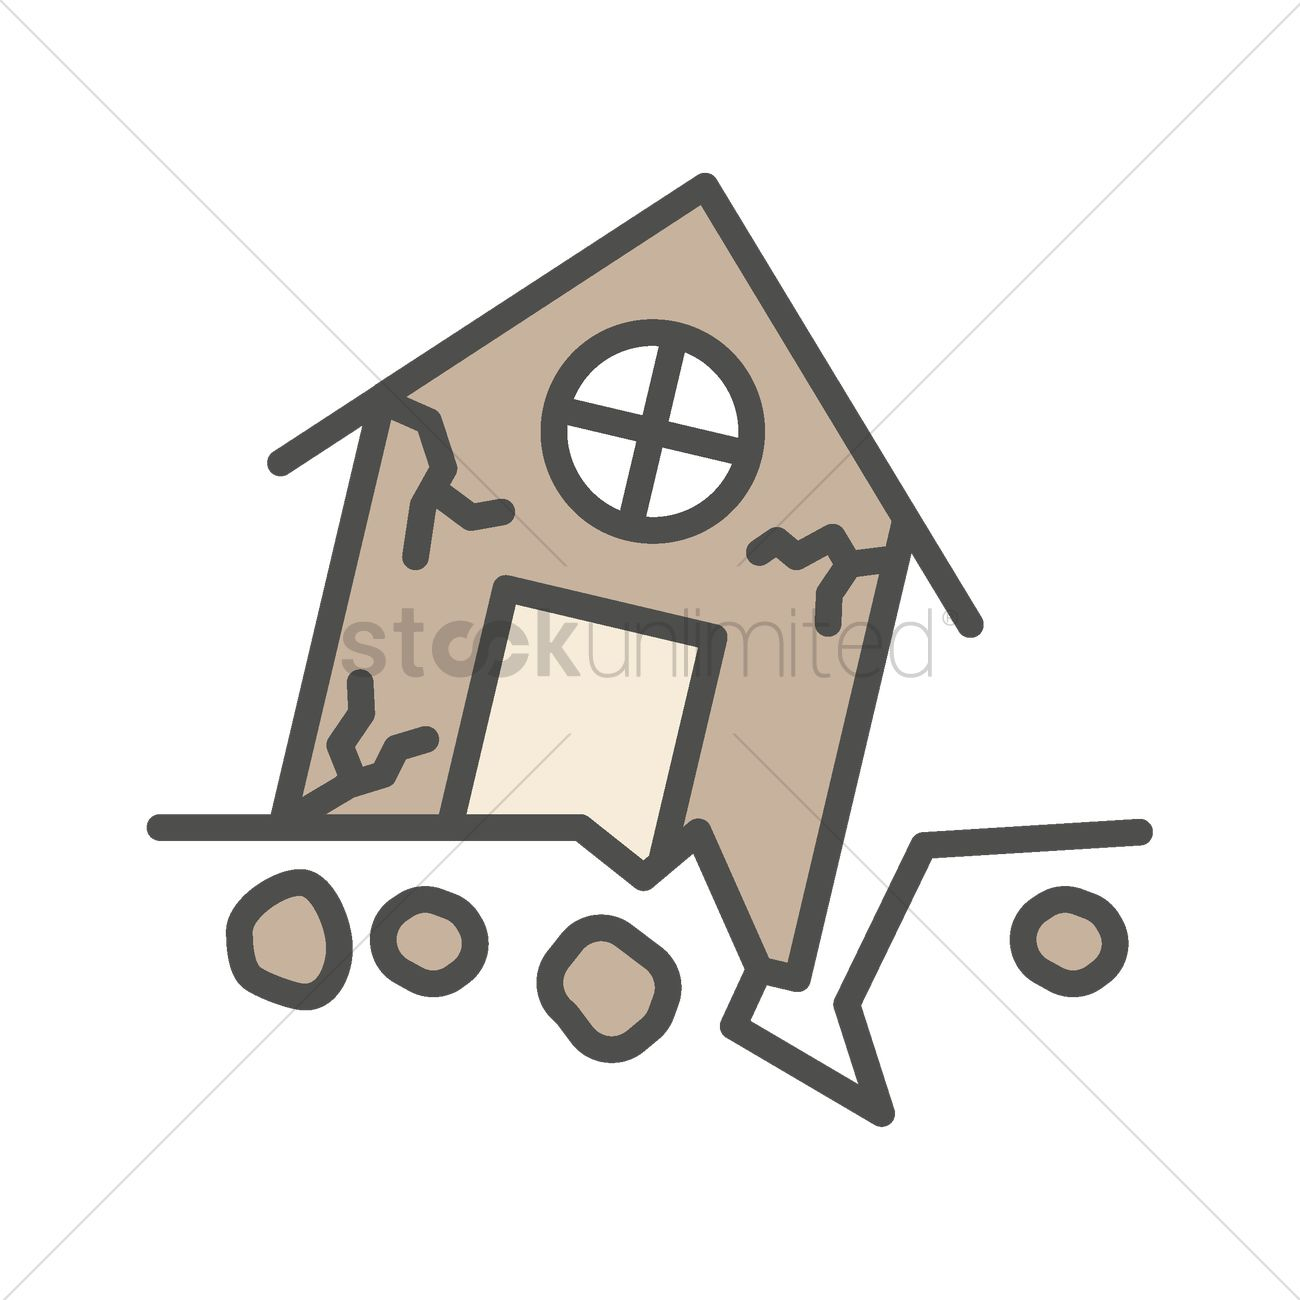 house in earthquake vector image 1999672 stockunlimited rh stockunlimited com earthquake clipart free earthquake clipart images